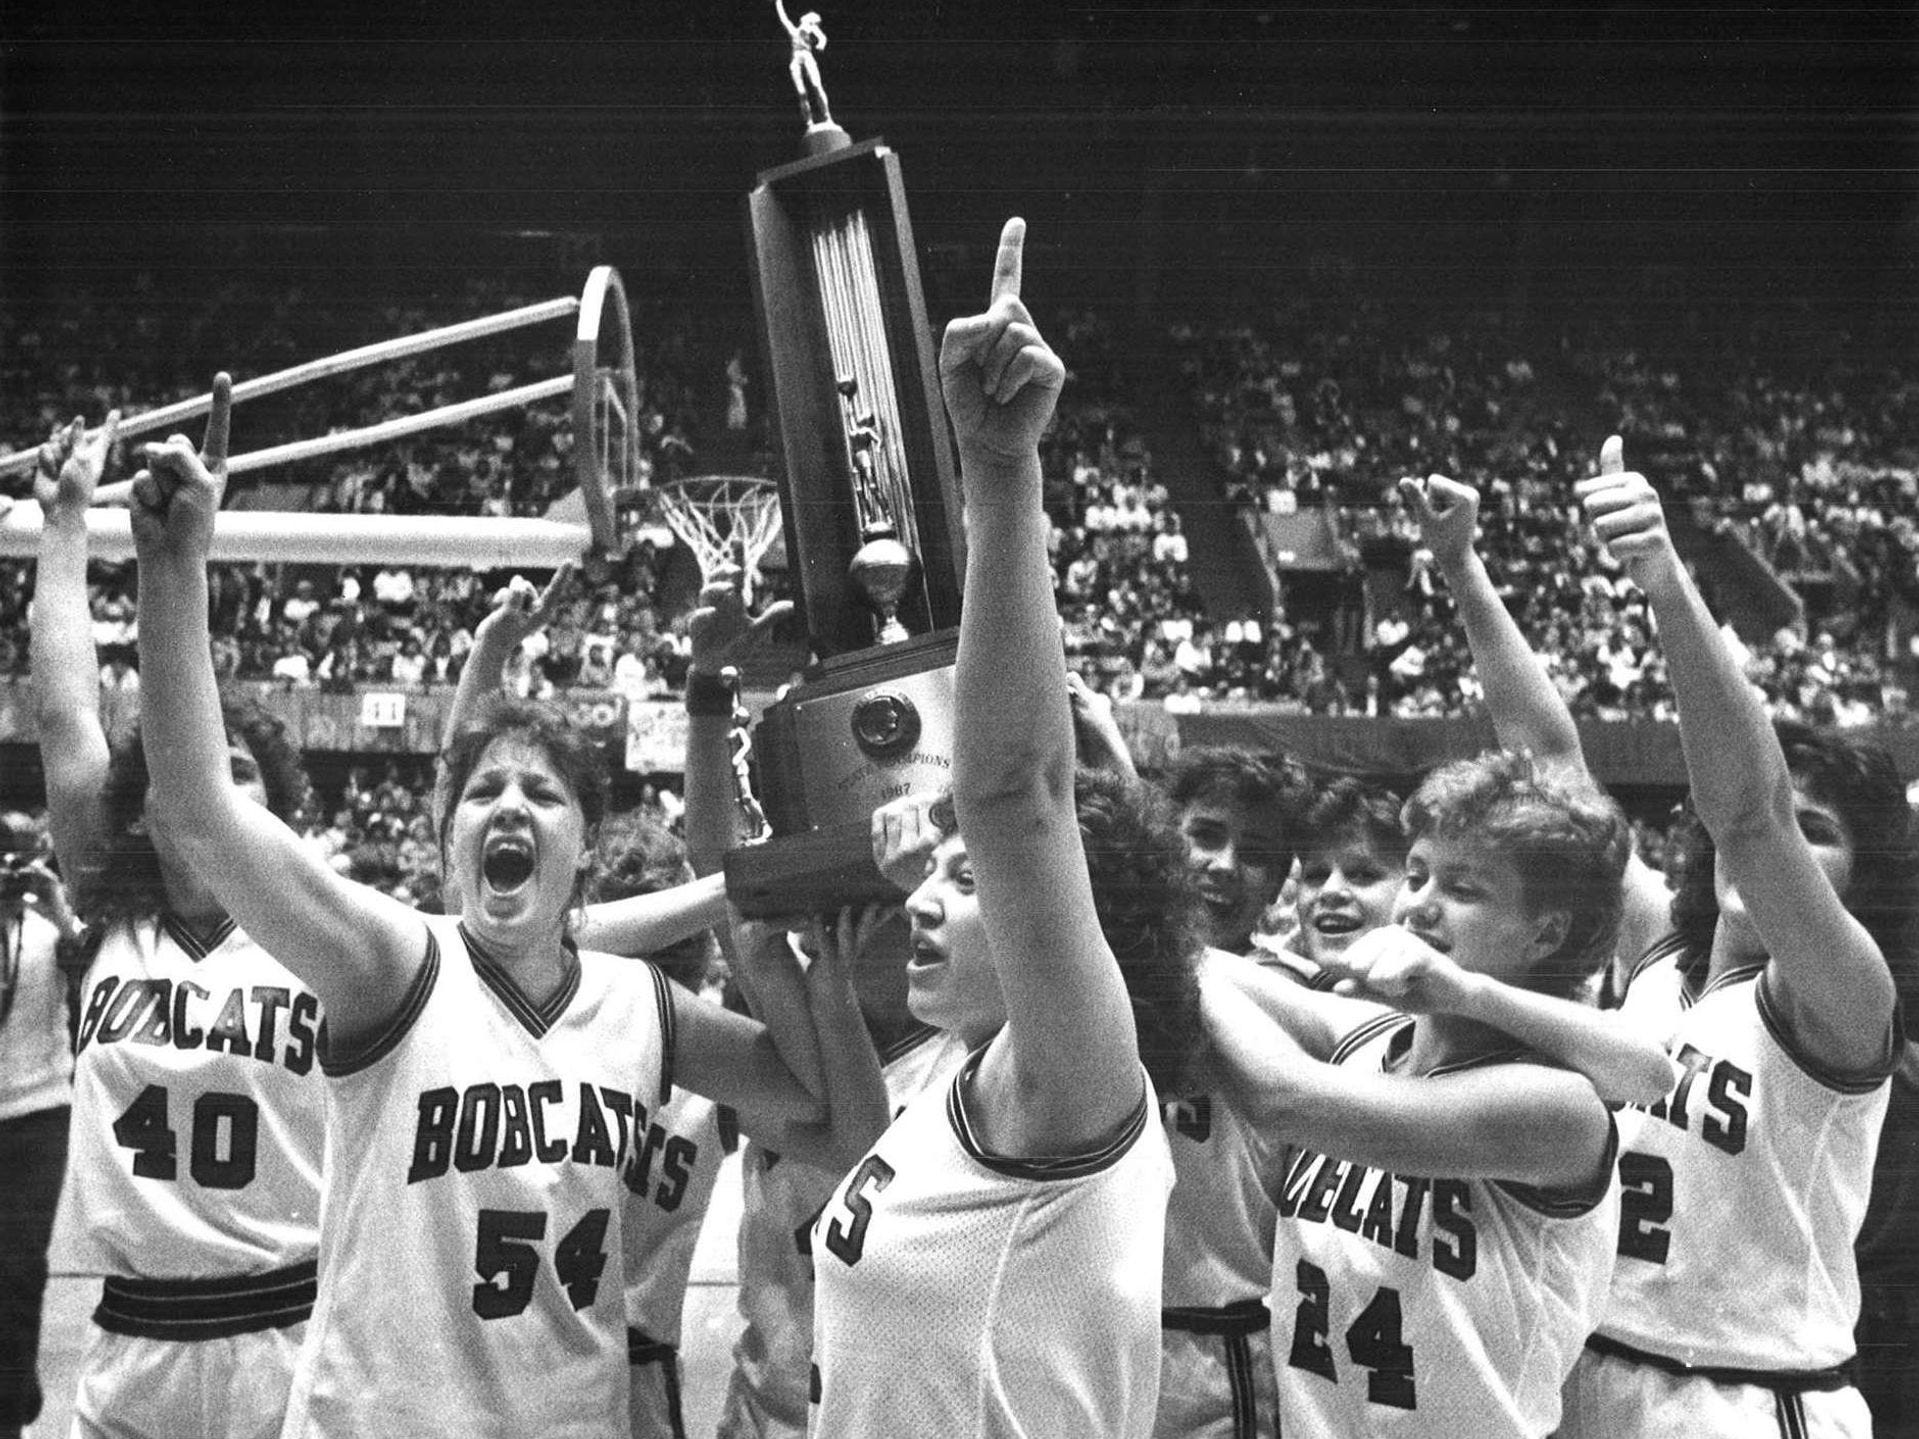 1987: Western Dubuque players hold their trophy after a victory in the state girlsÕ basketball tournament. Register file photo